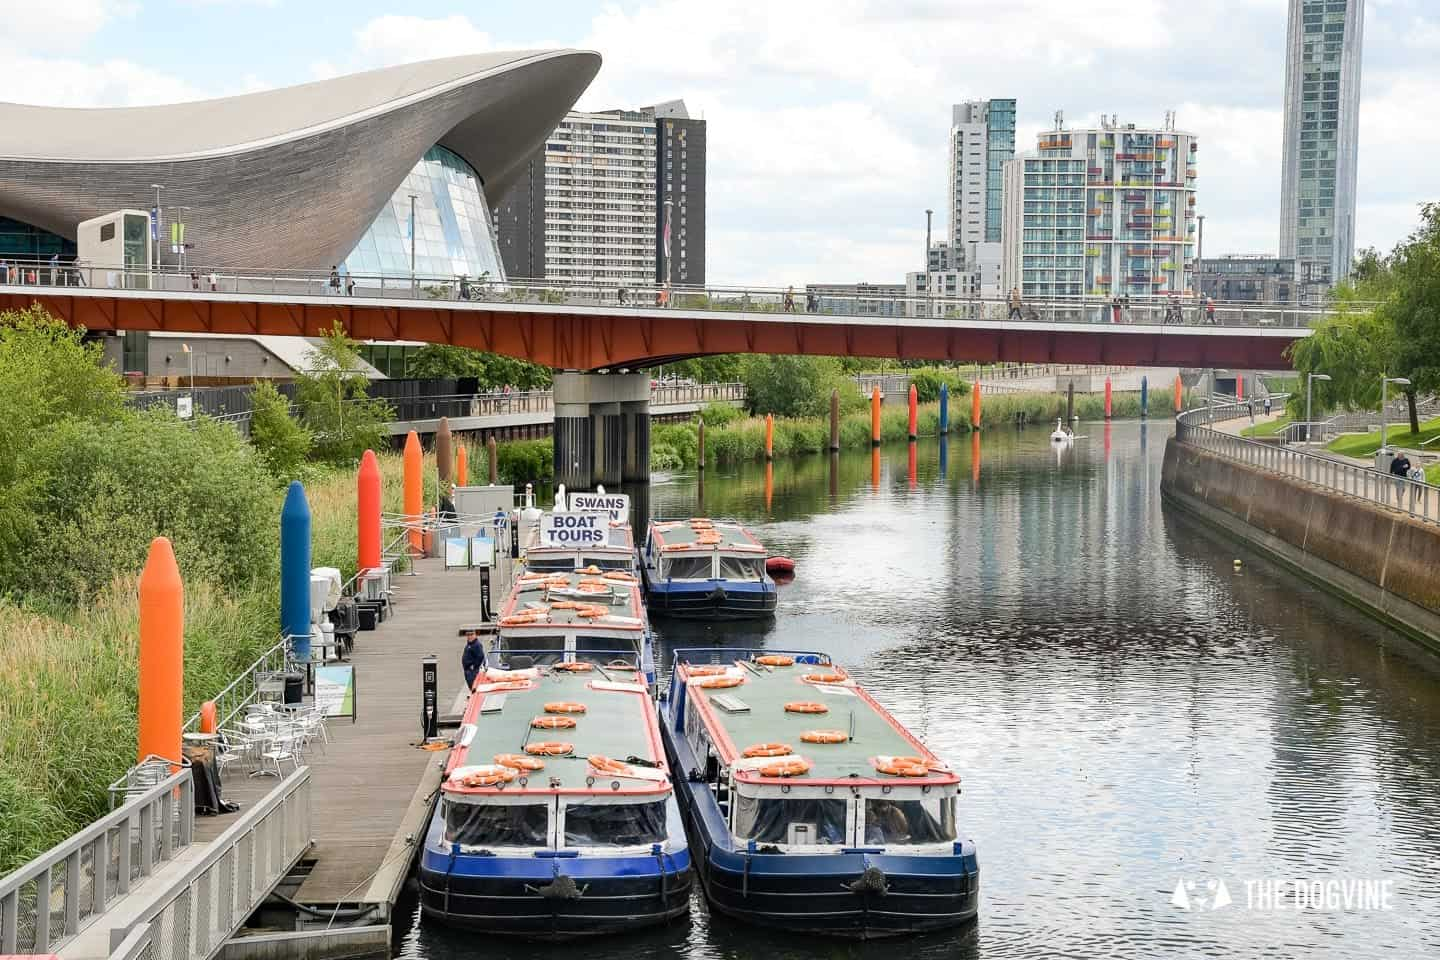 Queen Elizabeth Olympic Park Dog-friendly Boat Tours London - Lee and Stort 23